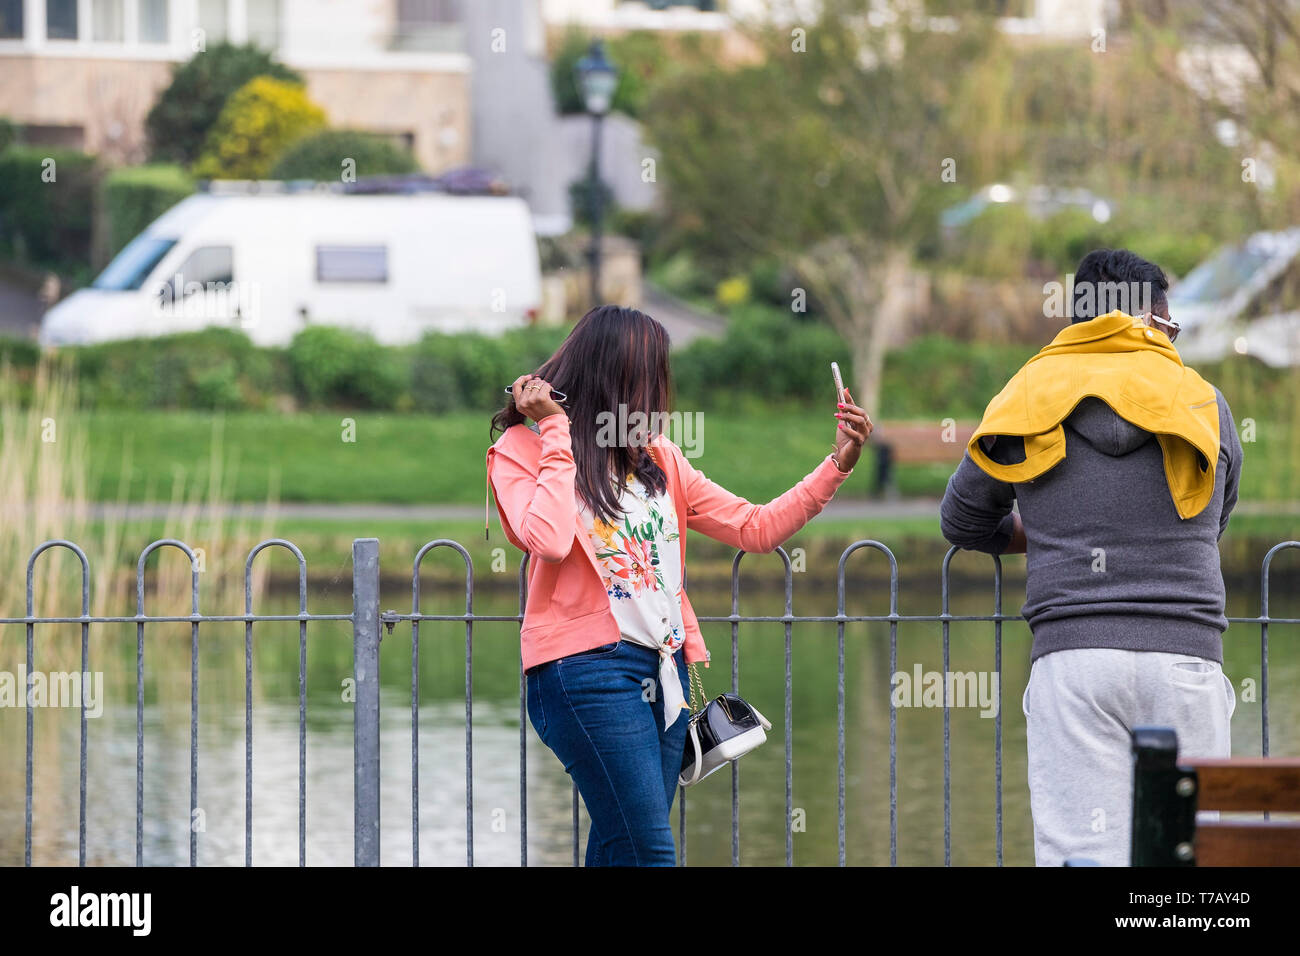 A narcissistic woman taking a selfie with her smartphone as her disinterested boyfriend ignores her. - Stock Image